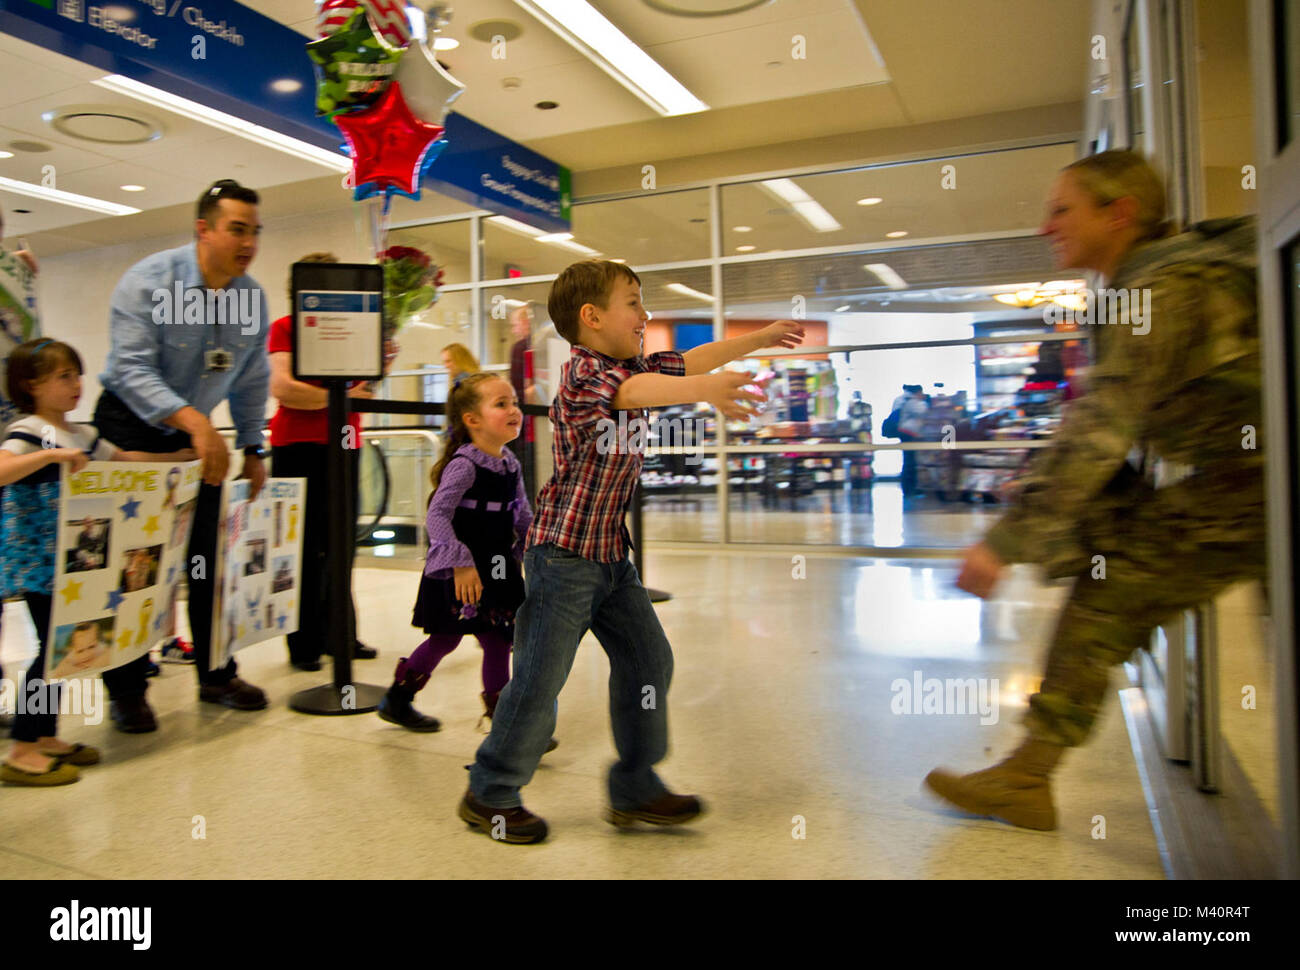 Eva Gamez, 4, and her brother, Tomas, 6, rush to meet their mother, Tech. Sgt. Christina Gamez, as she returns to - Stock Image